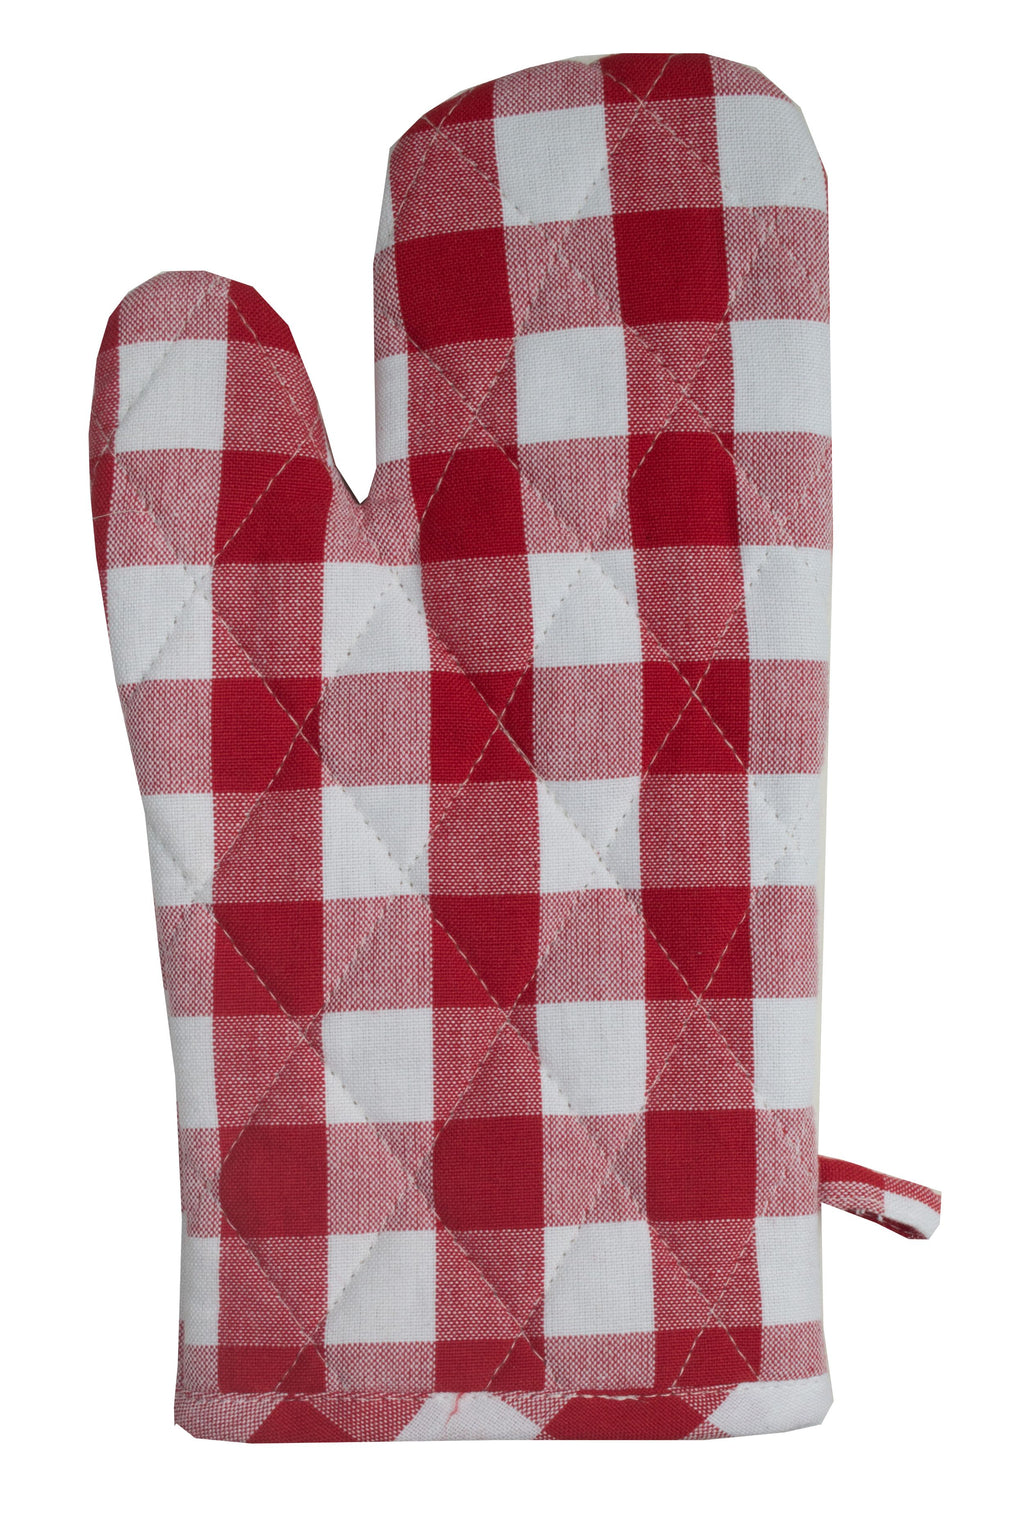 Dunroven House Buffalo Check on White Oven Mitt